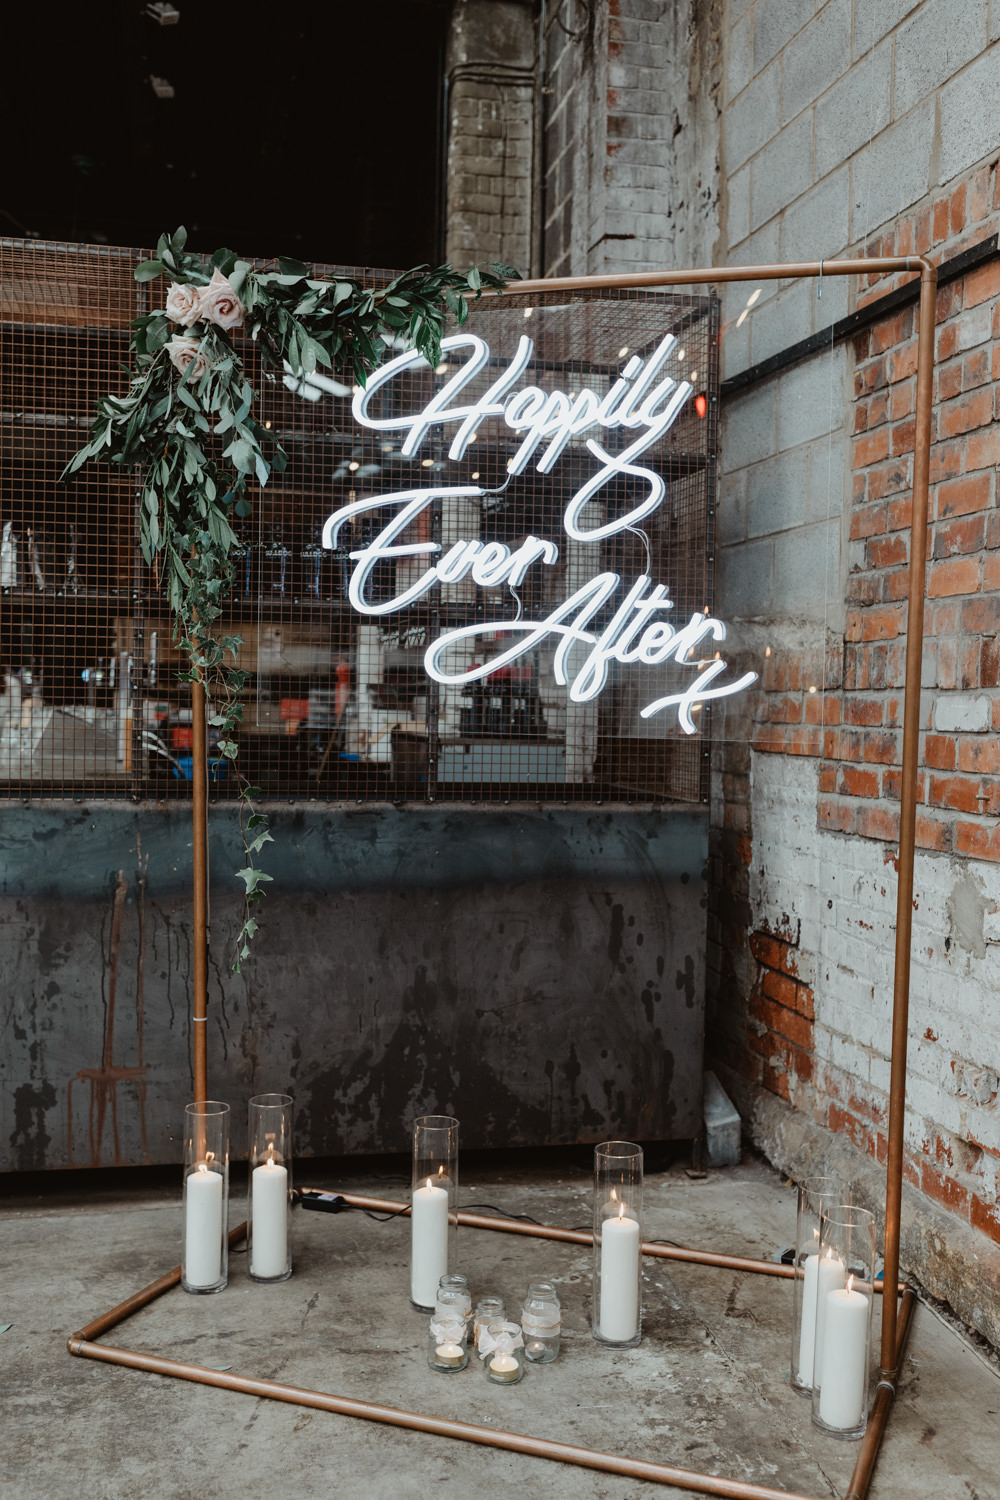 Backdrop Frame Ceremony Aisle Neon Light Candles Greenery Flower Arch 92 Burton Road Wedding Stevie Jay Photography